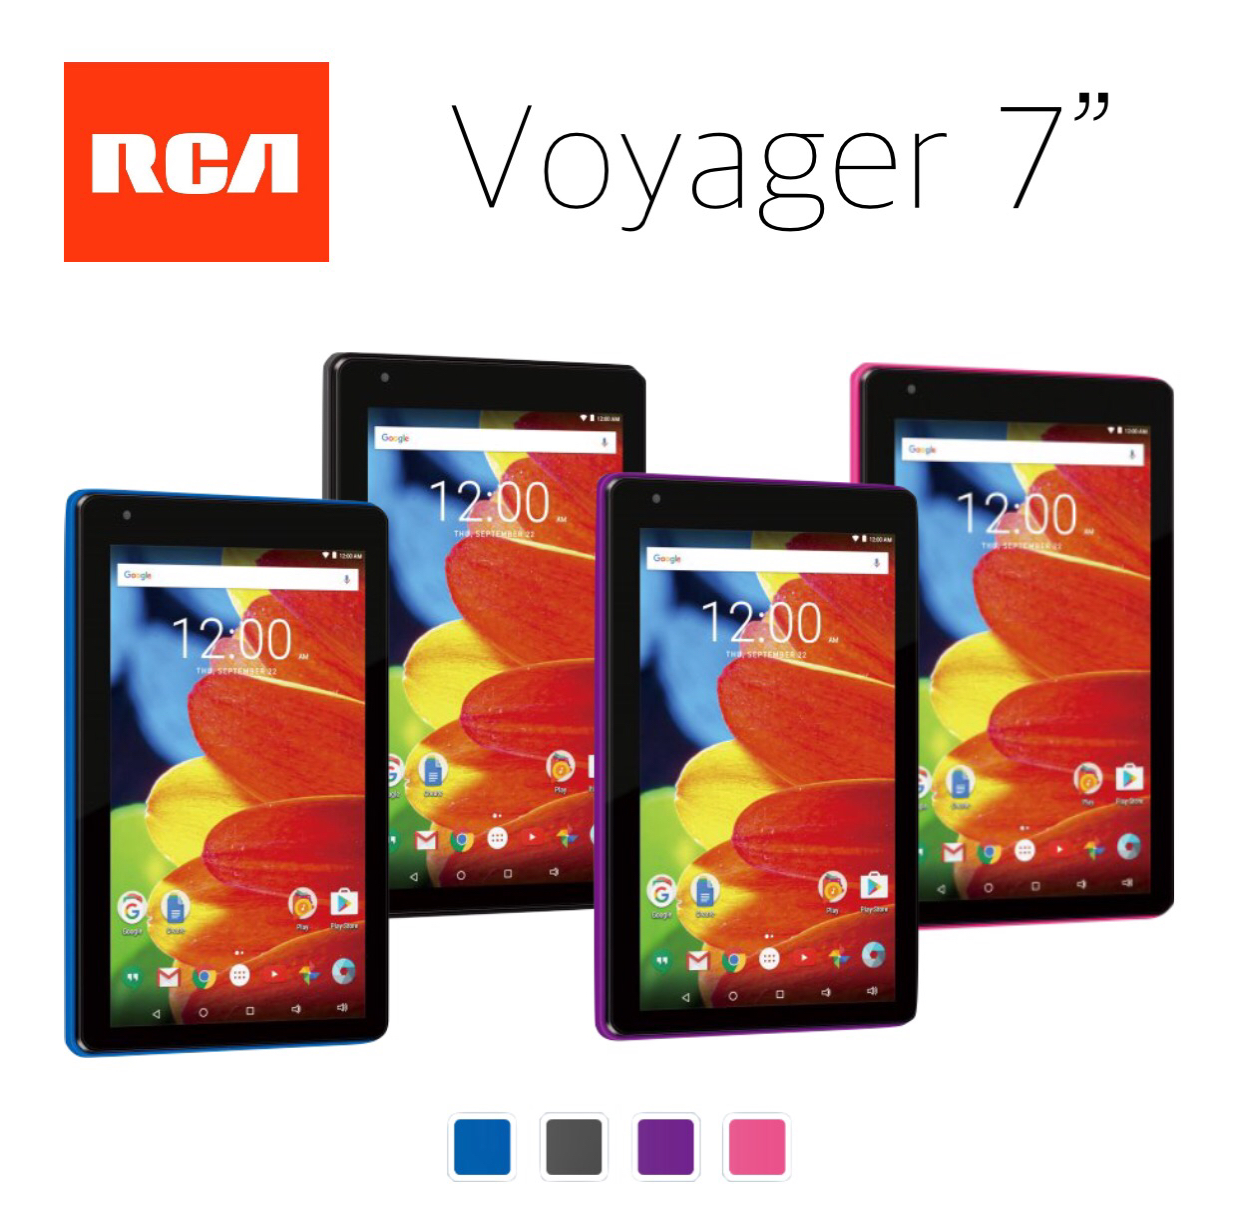 RCA Voyager 7